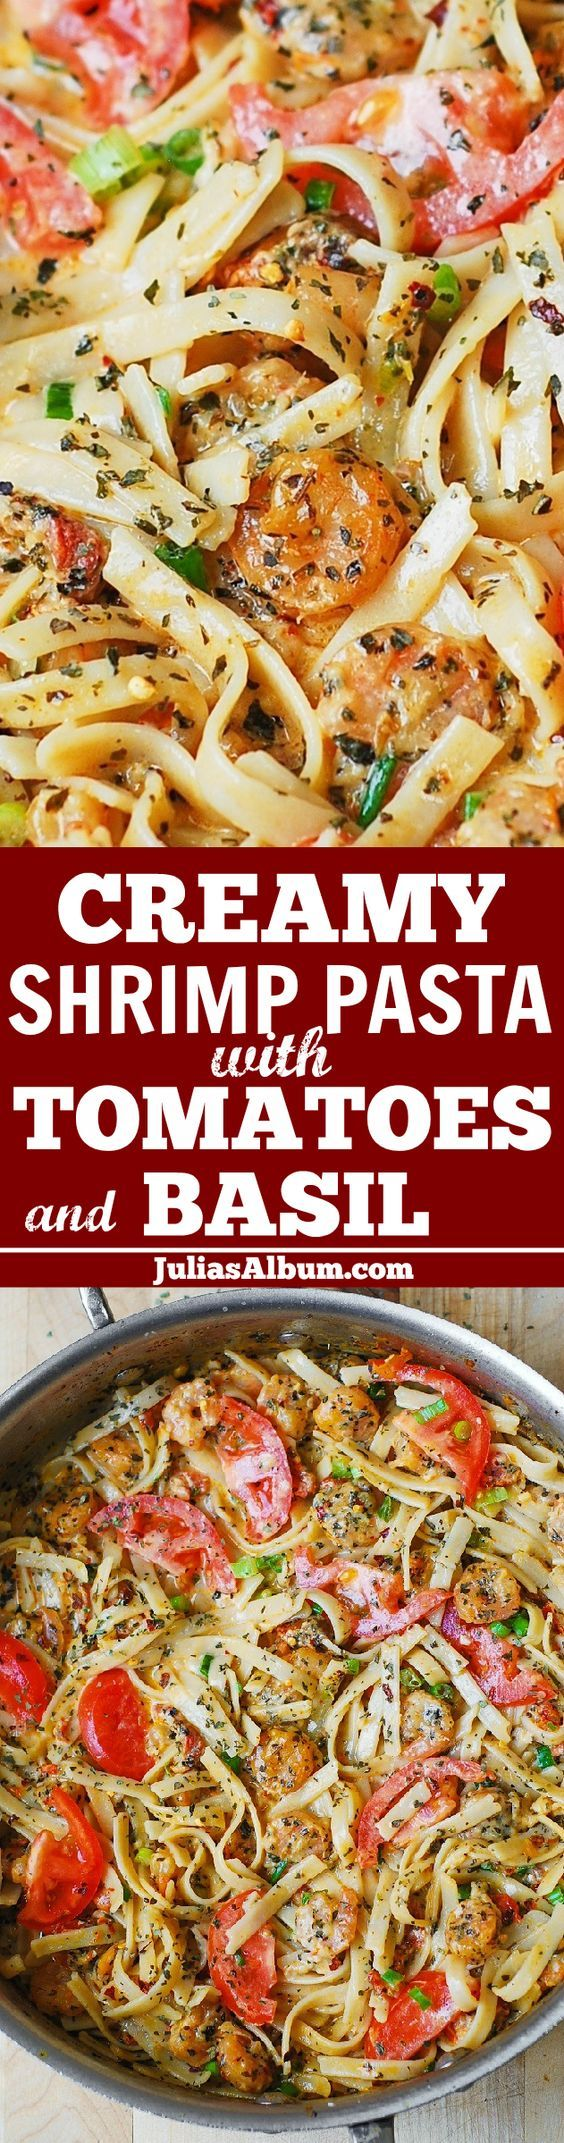 Spicy Shrimp with Basil Tomato Fettuccine Pasta - Lots of garlic and fresh tomatoes, smothered in a flavorful and spicy creamy sauce!